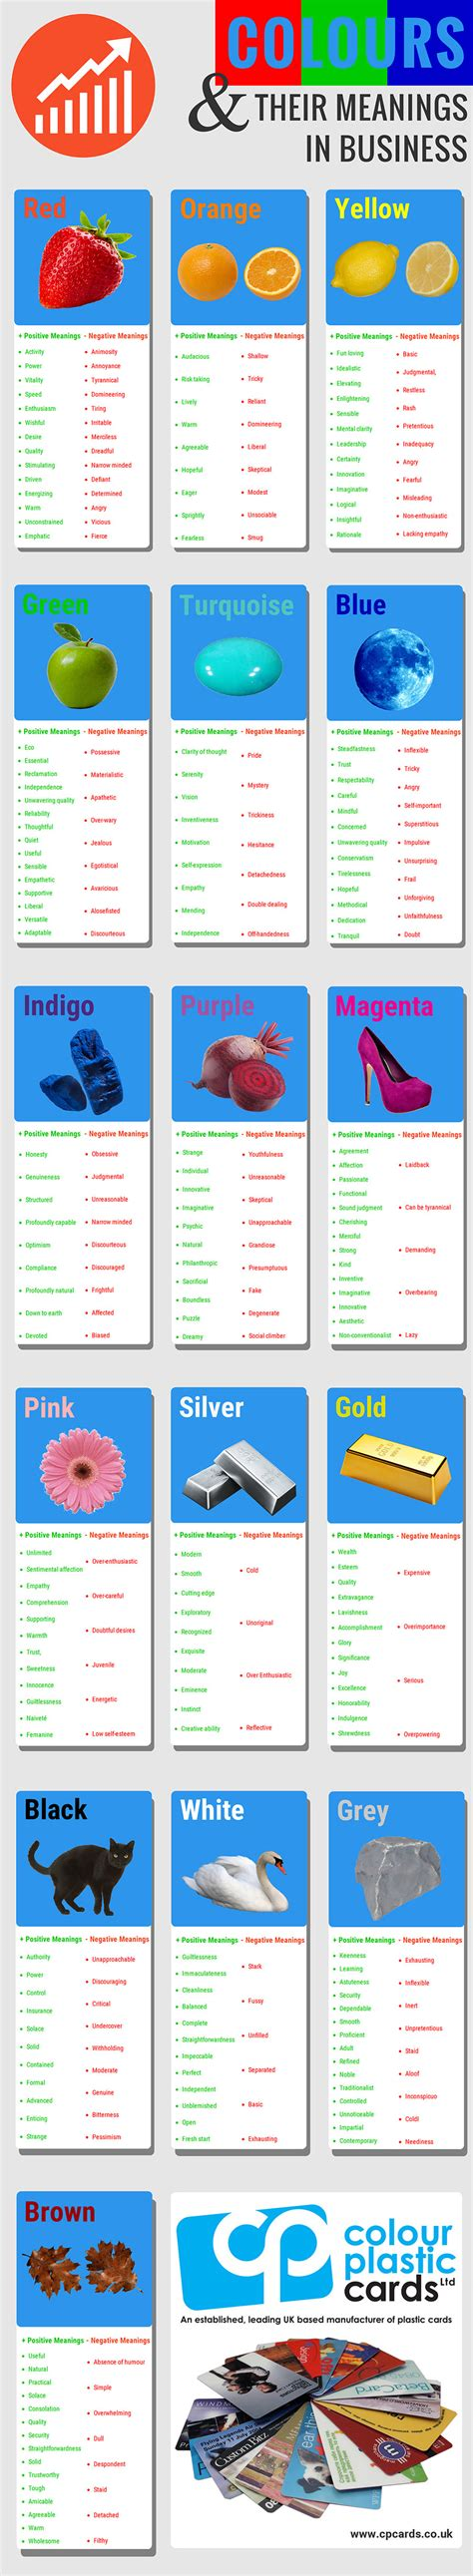 colours and their meanings in business infographic